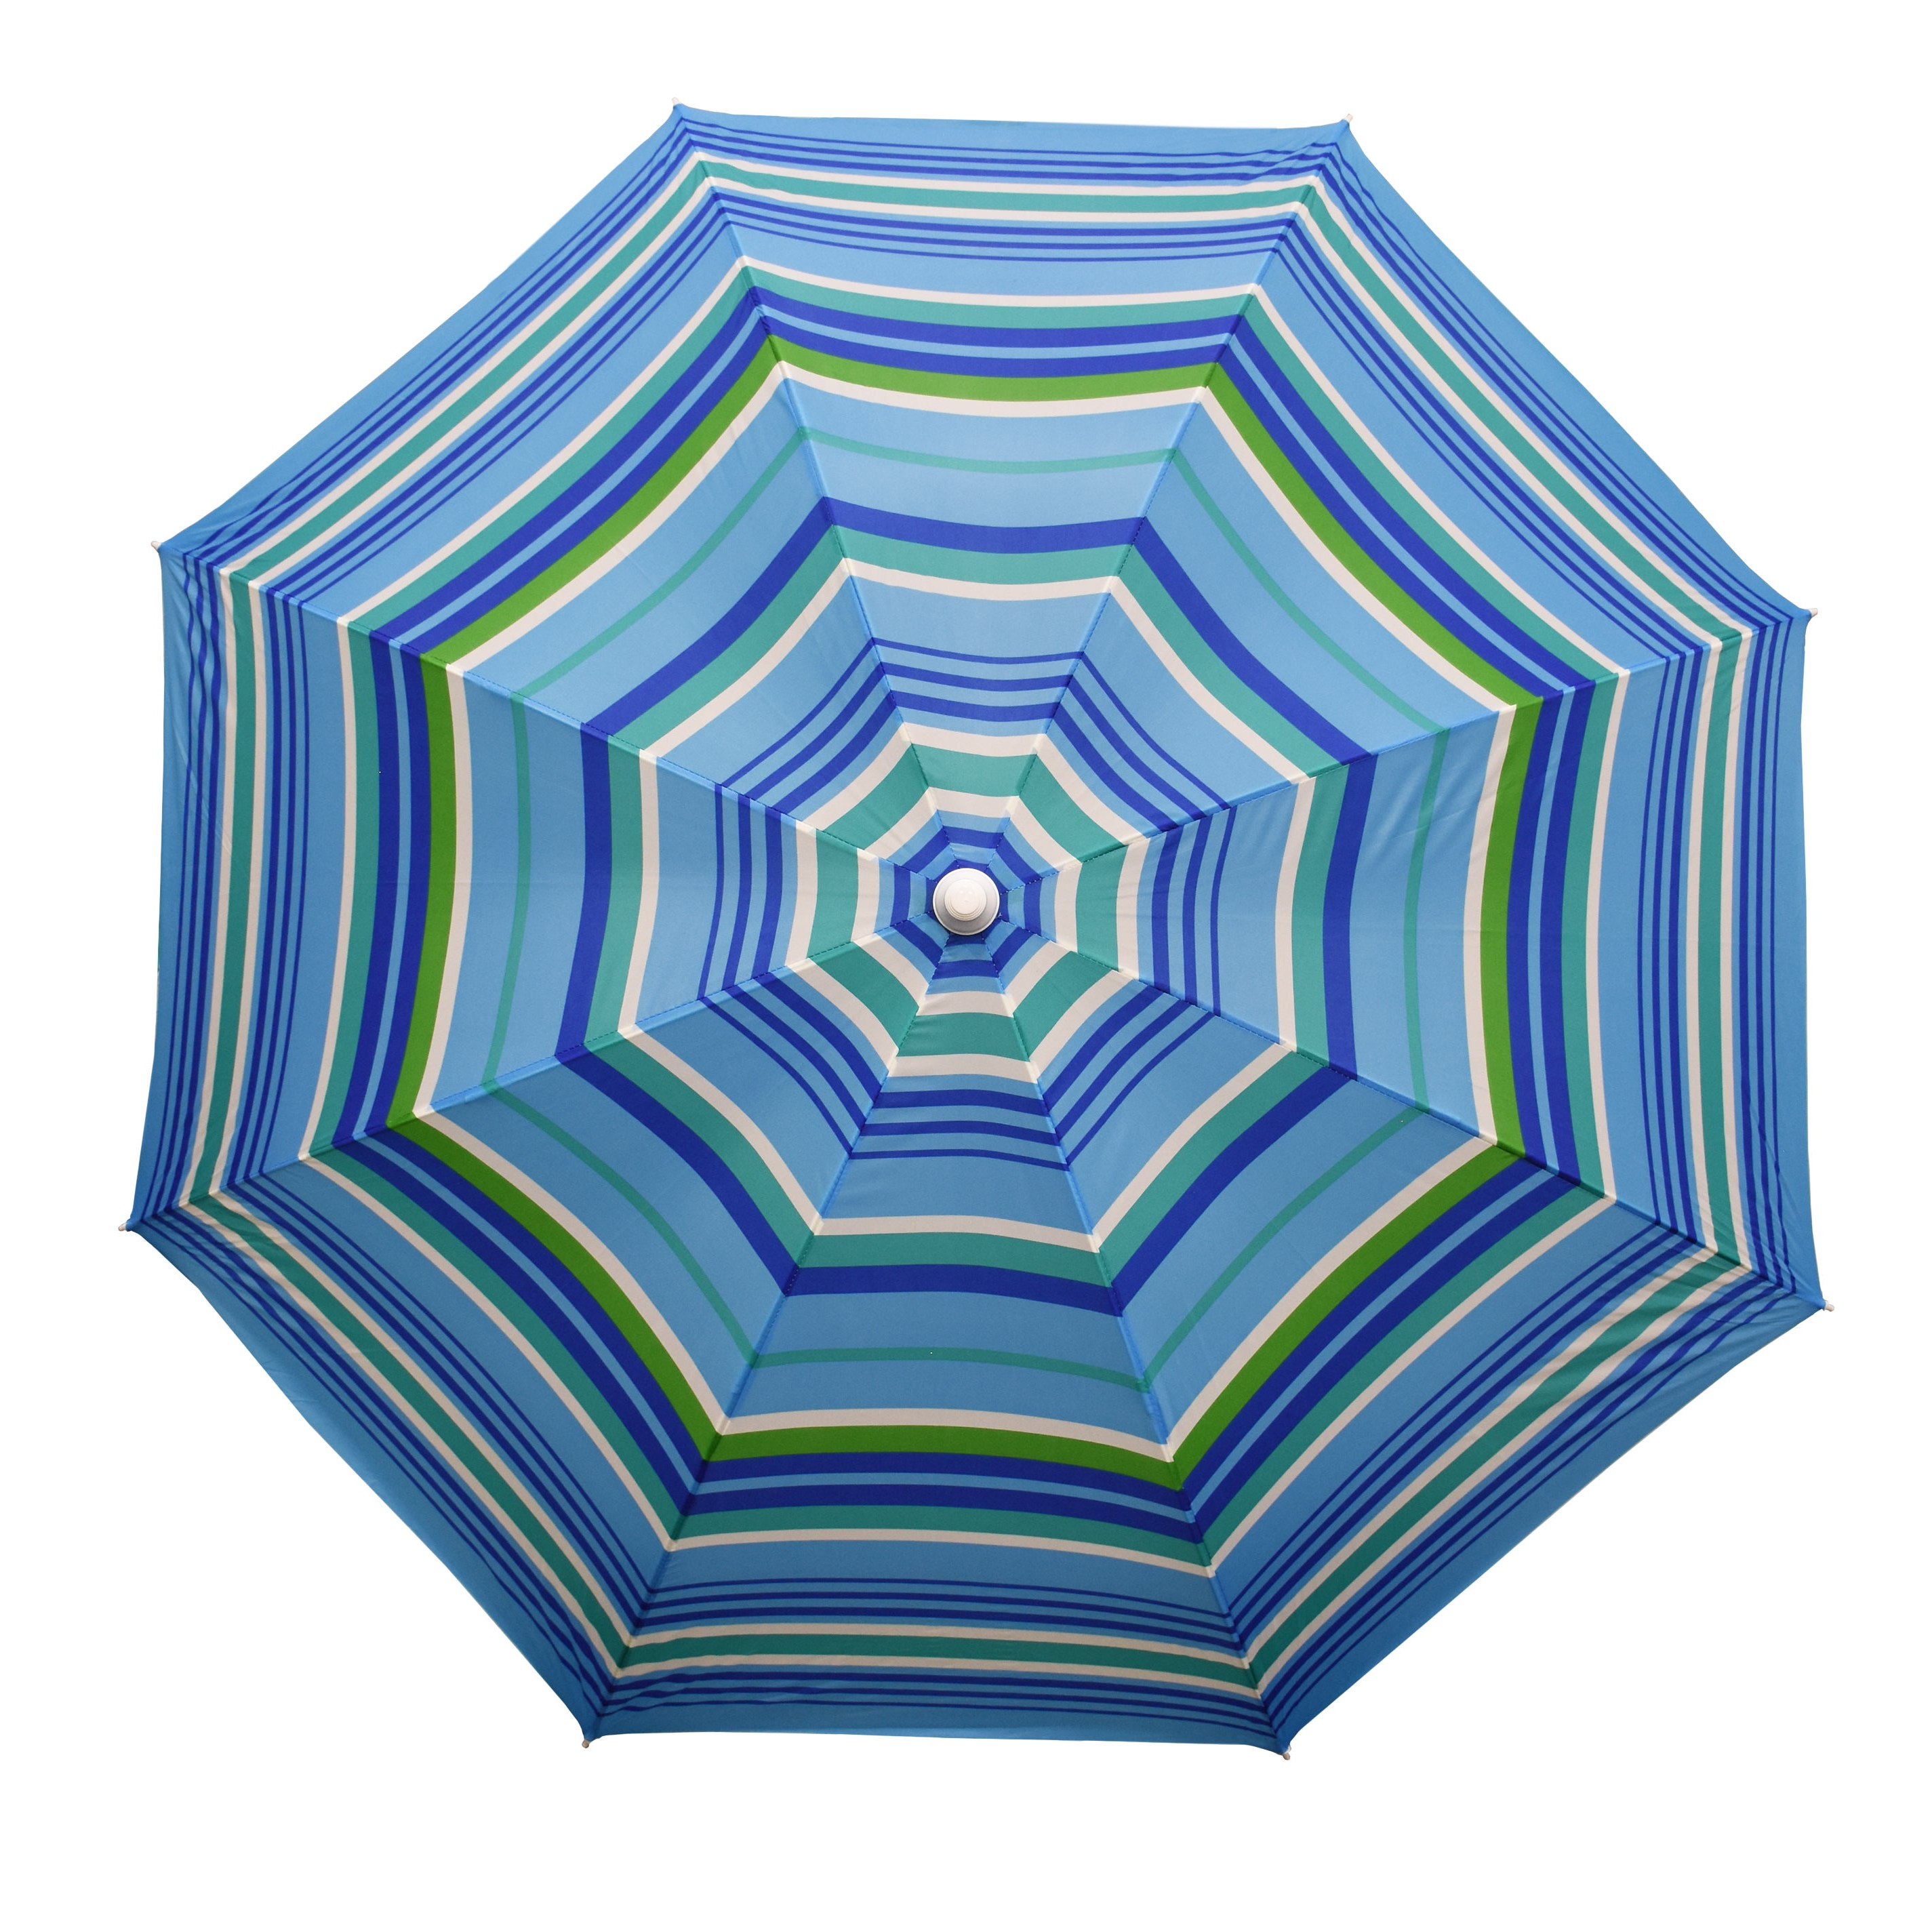 Margaritaville Green And Blue Striped Beach With Built In Sand Anchor Umbrellas Within Fashionable Astella 6' Round Beach Umbrella (Gallery 18 of 20)